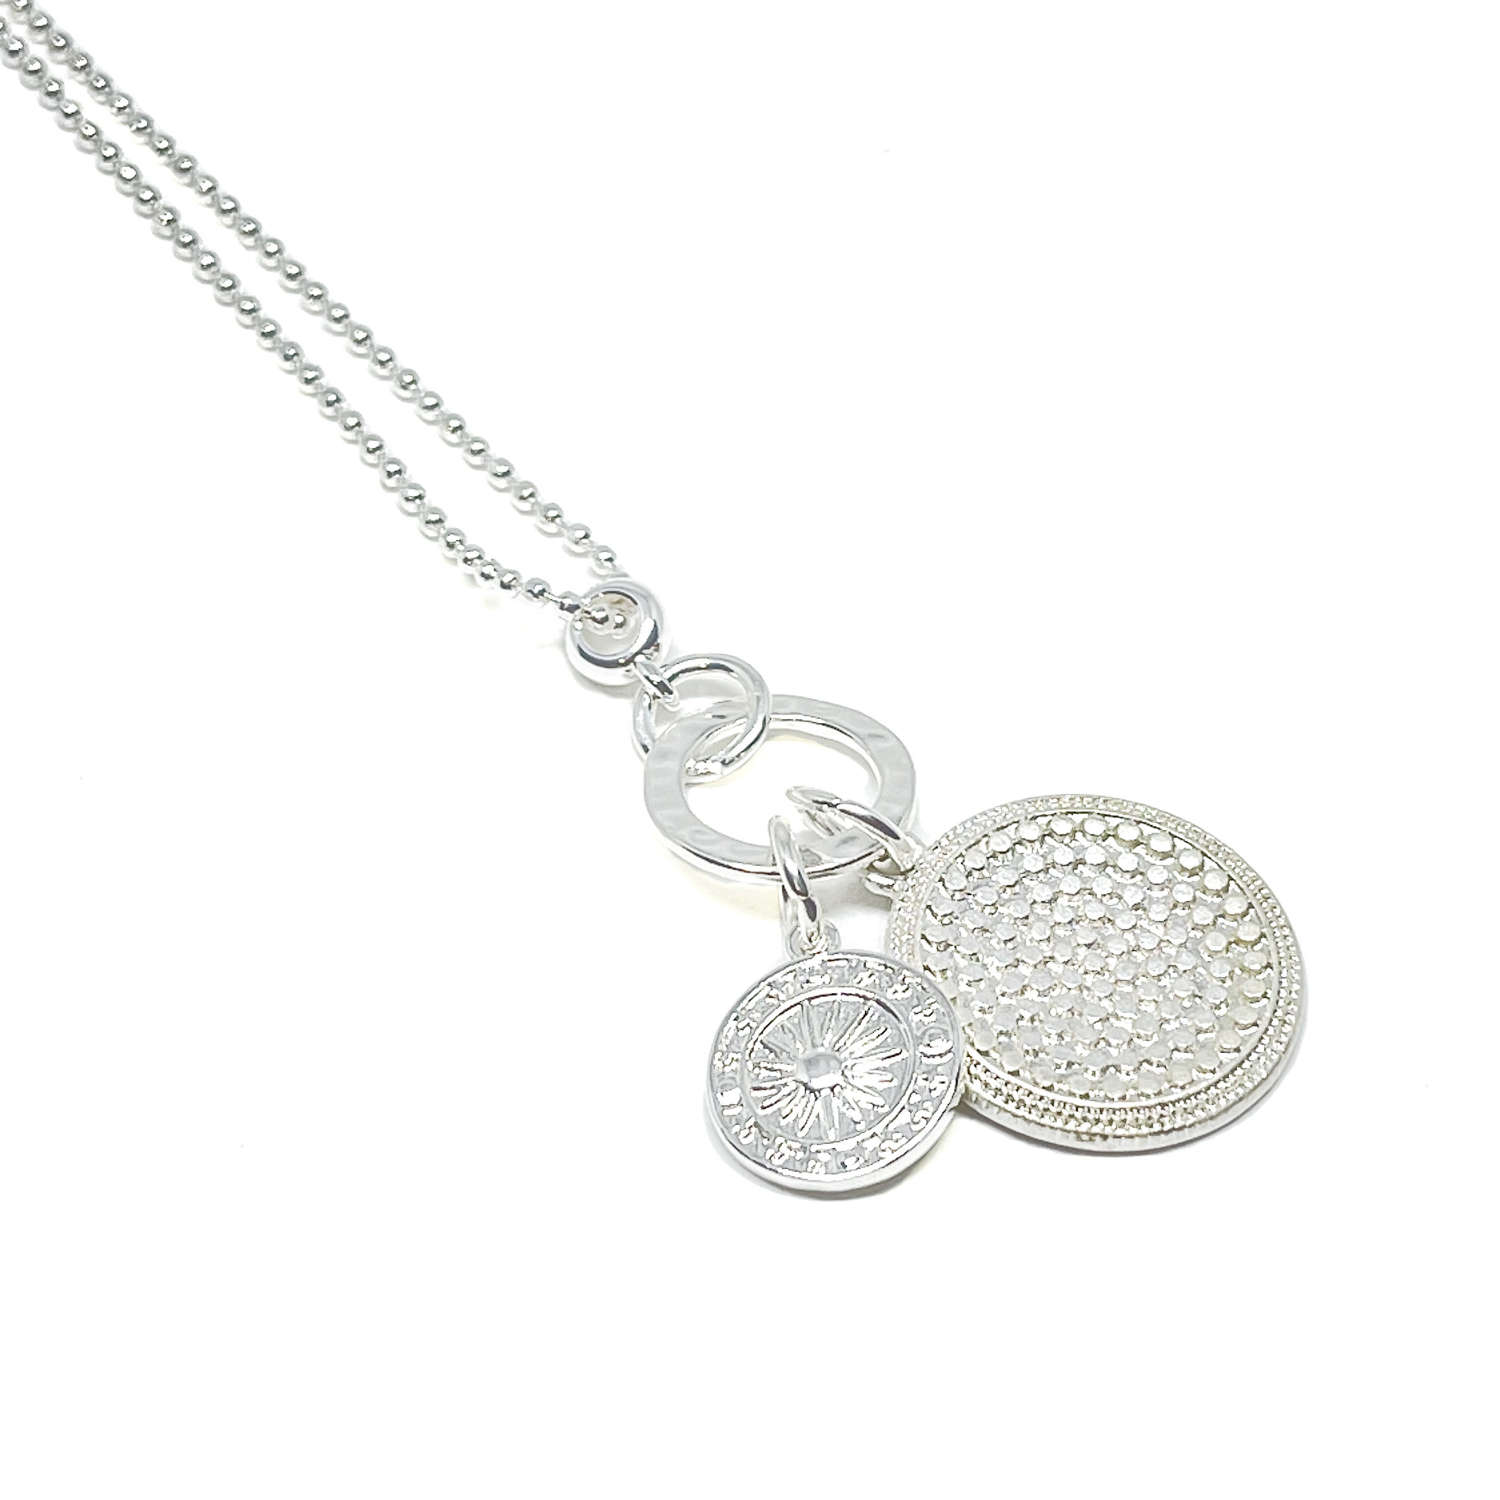 Petra Disc Charm Necklace - Silver